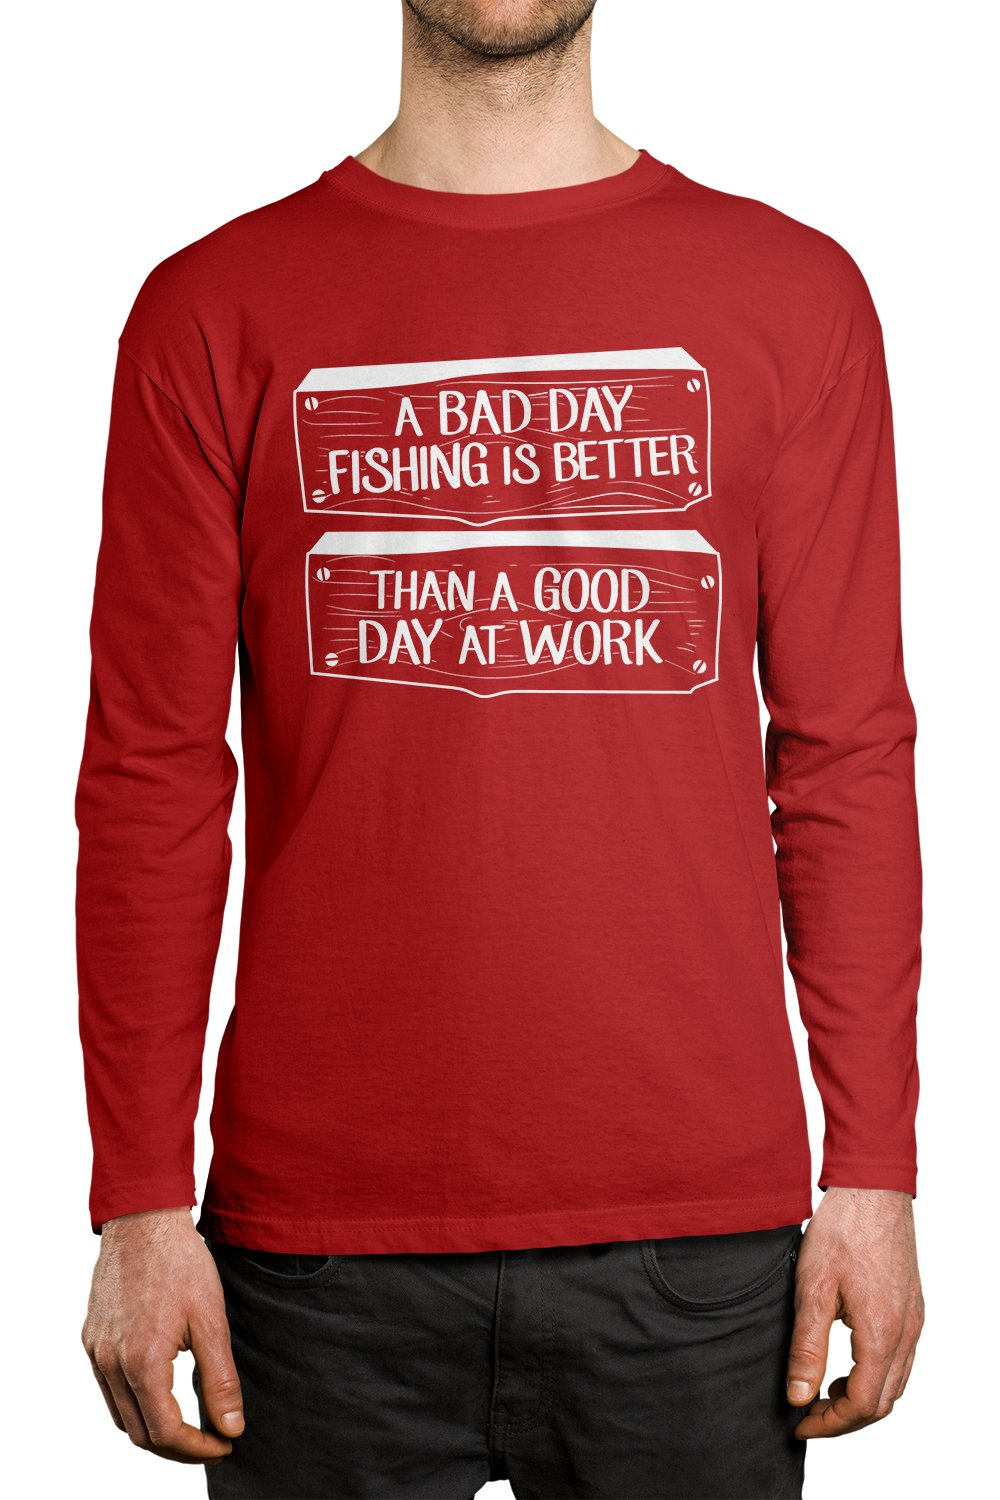 Apparel A Bad Day Fishing Is Better Than S Shirt